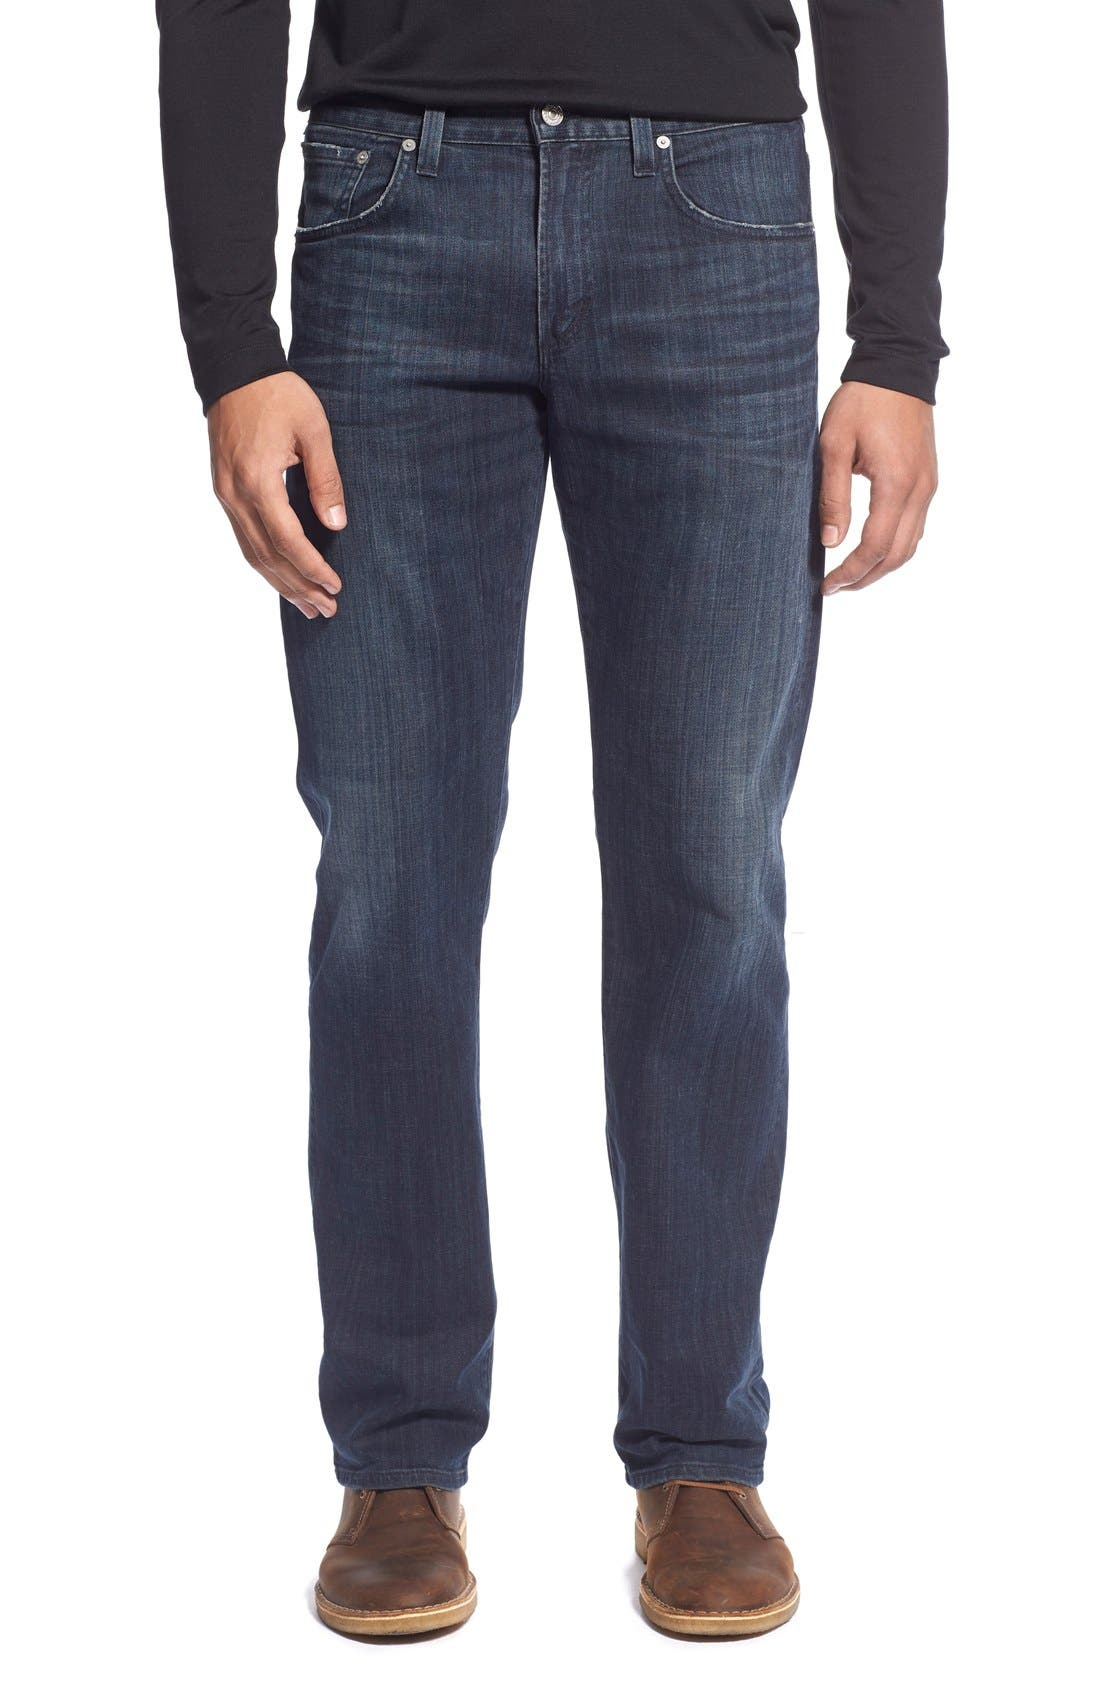 Alternate Image 1 Selected - Citizens of Humanity Perfect Relaxed Straight Leg Jeans (Guitar)